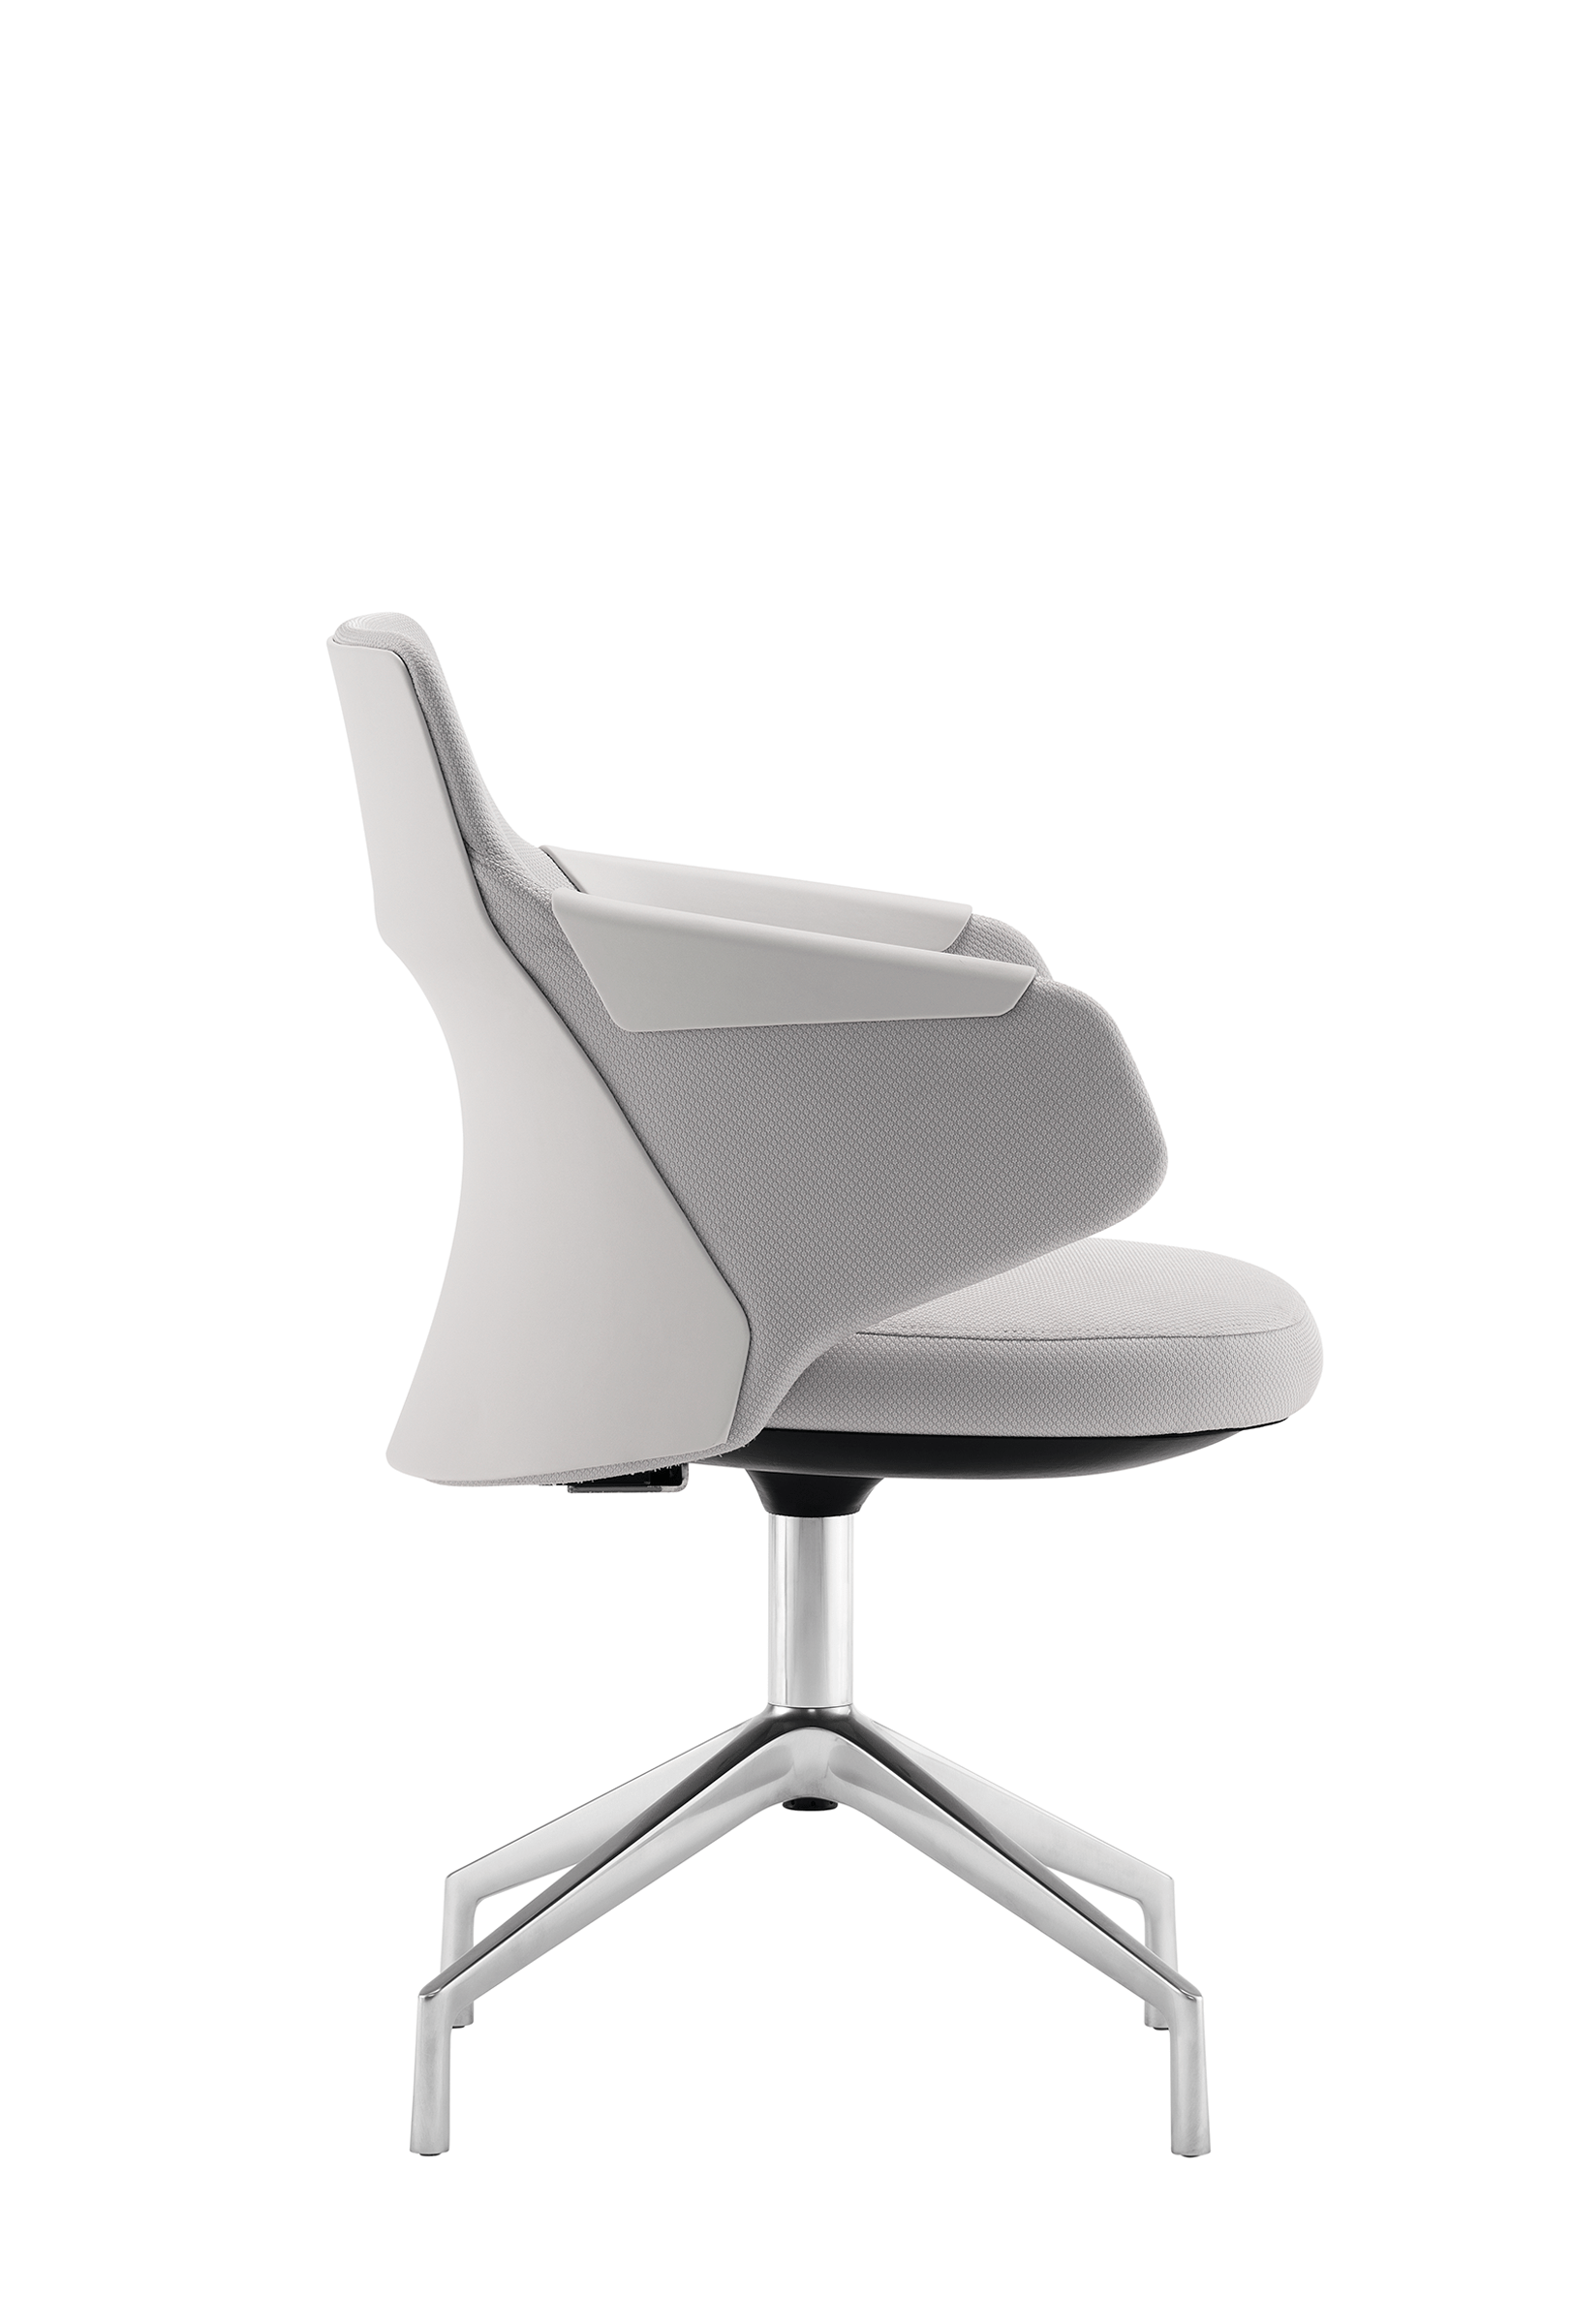 back pillow for office chair upholstered club chairs designapplause | massaud executive chair. jean-marie massaud.